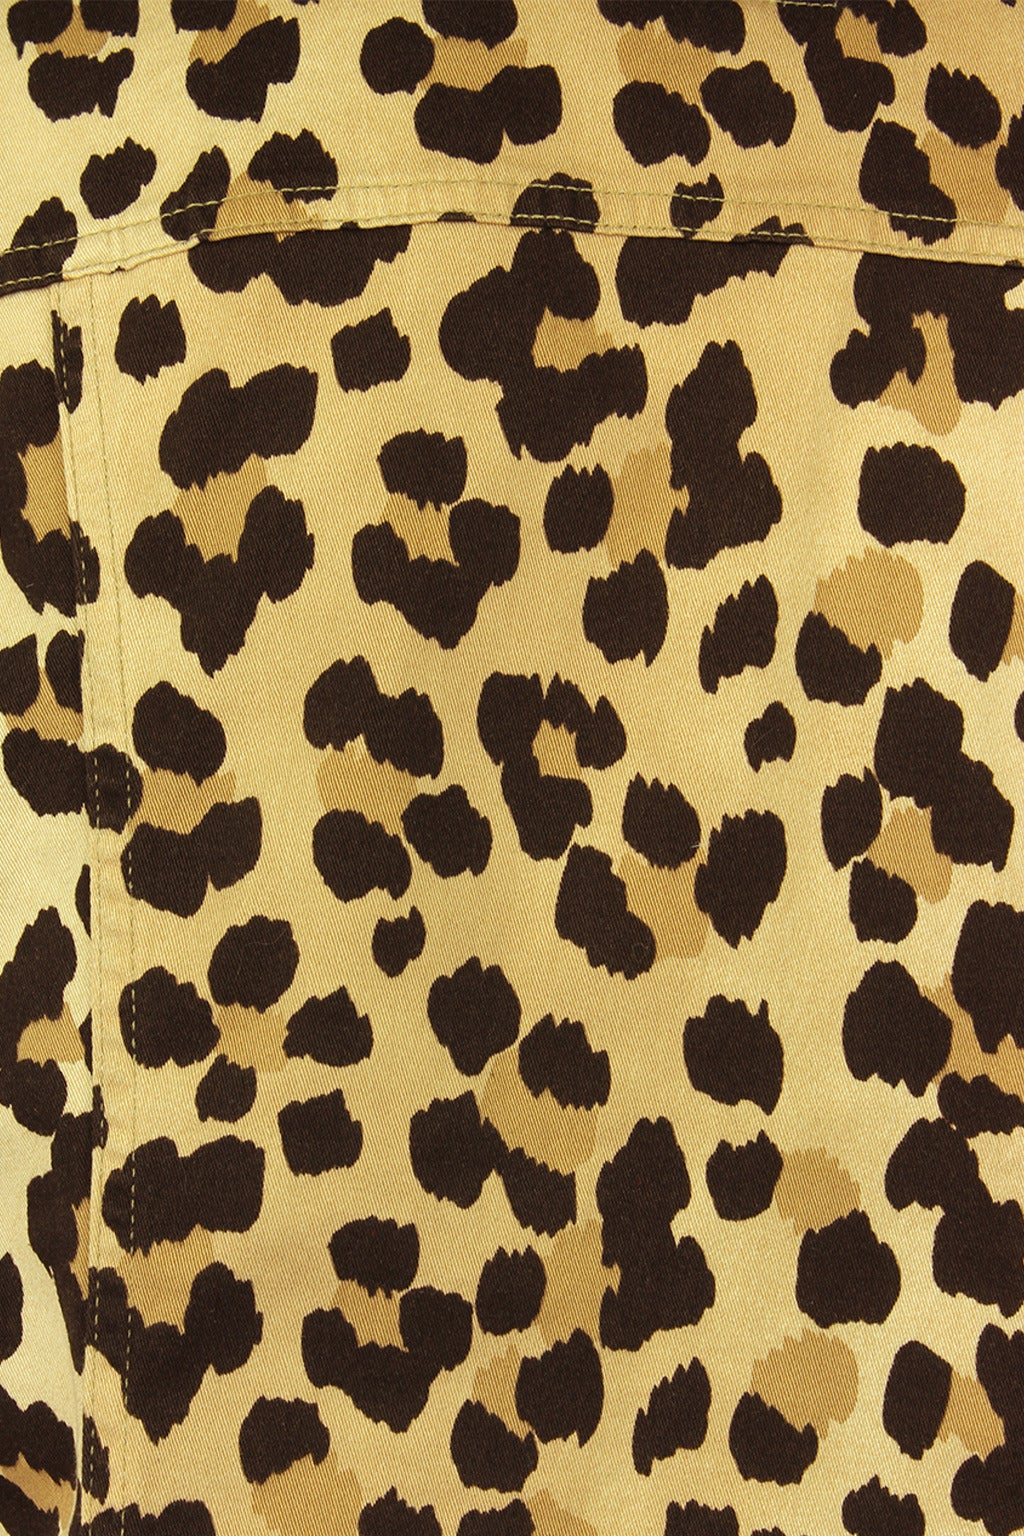 Moschino 1990s Cheetah Print Cropped Western Style Jacket 6